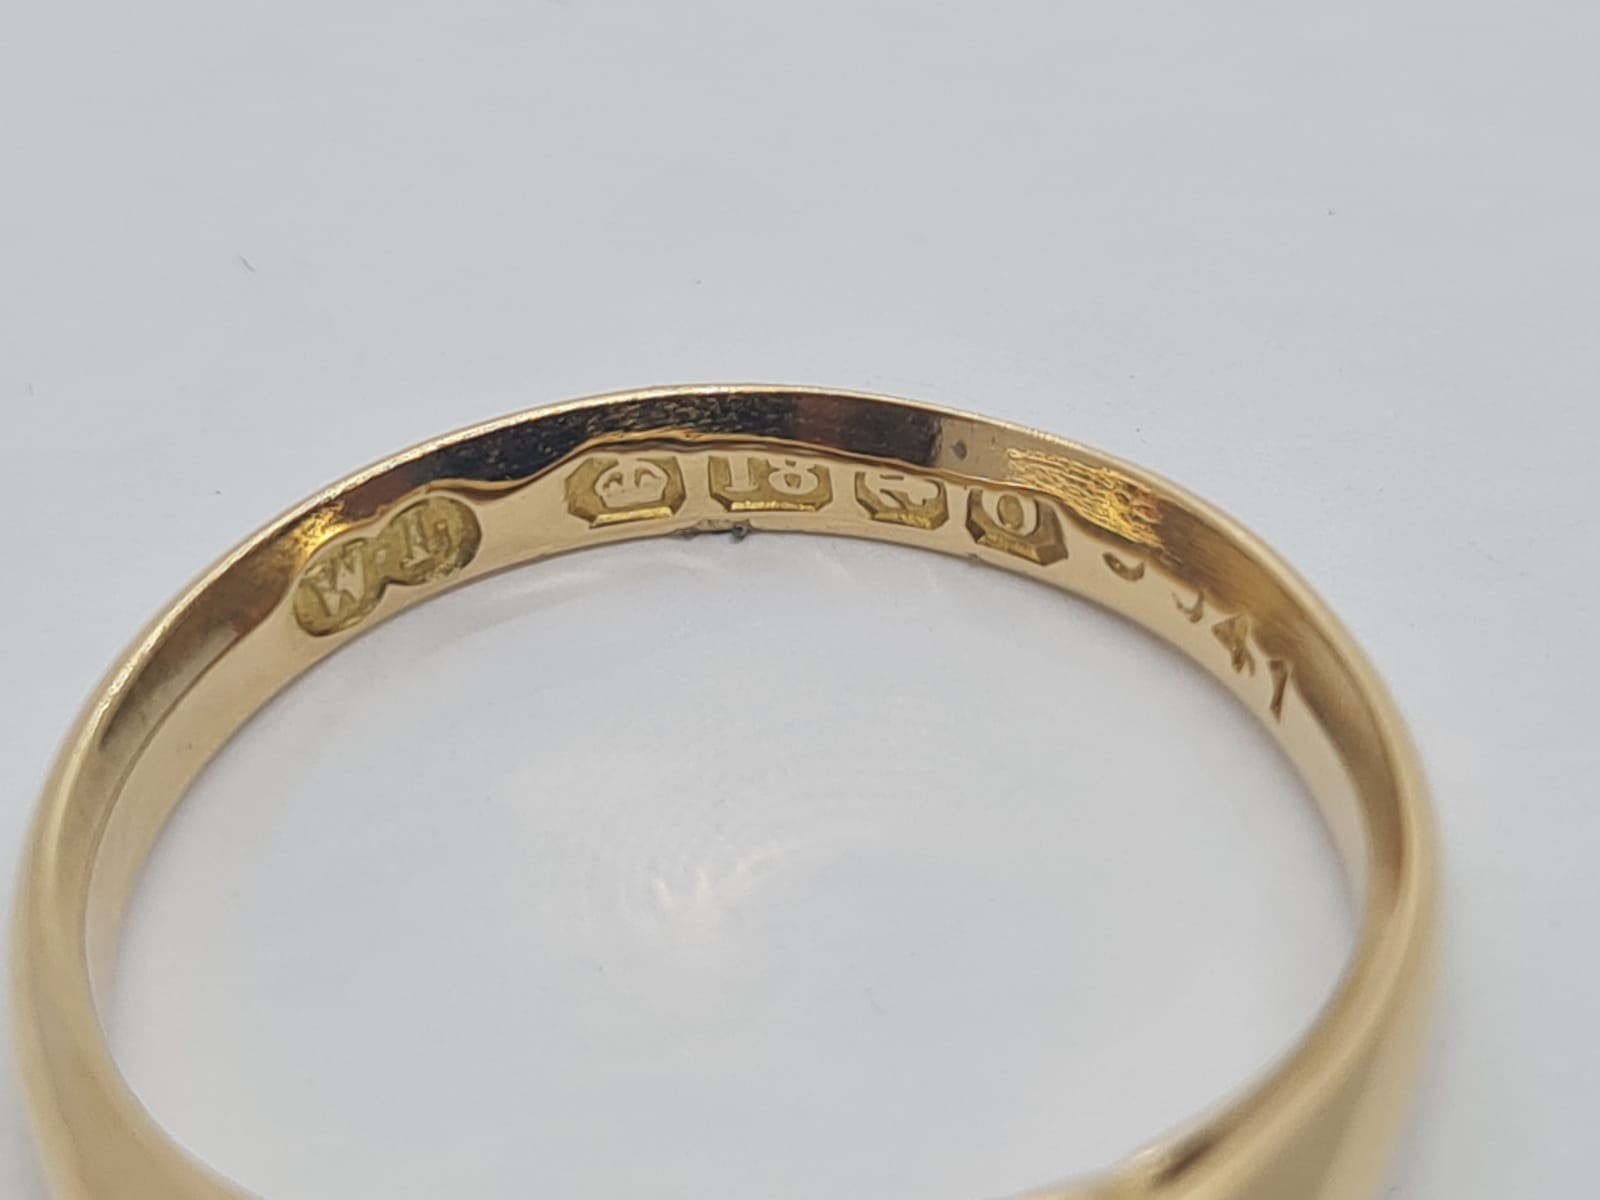 18k Yellow gold vintage DIAMOND 5 STONE SET RING, APPROX 0.15CT DIAMONDS, WEIGHT 2.9g SIZE N - Image 4 of 4